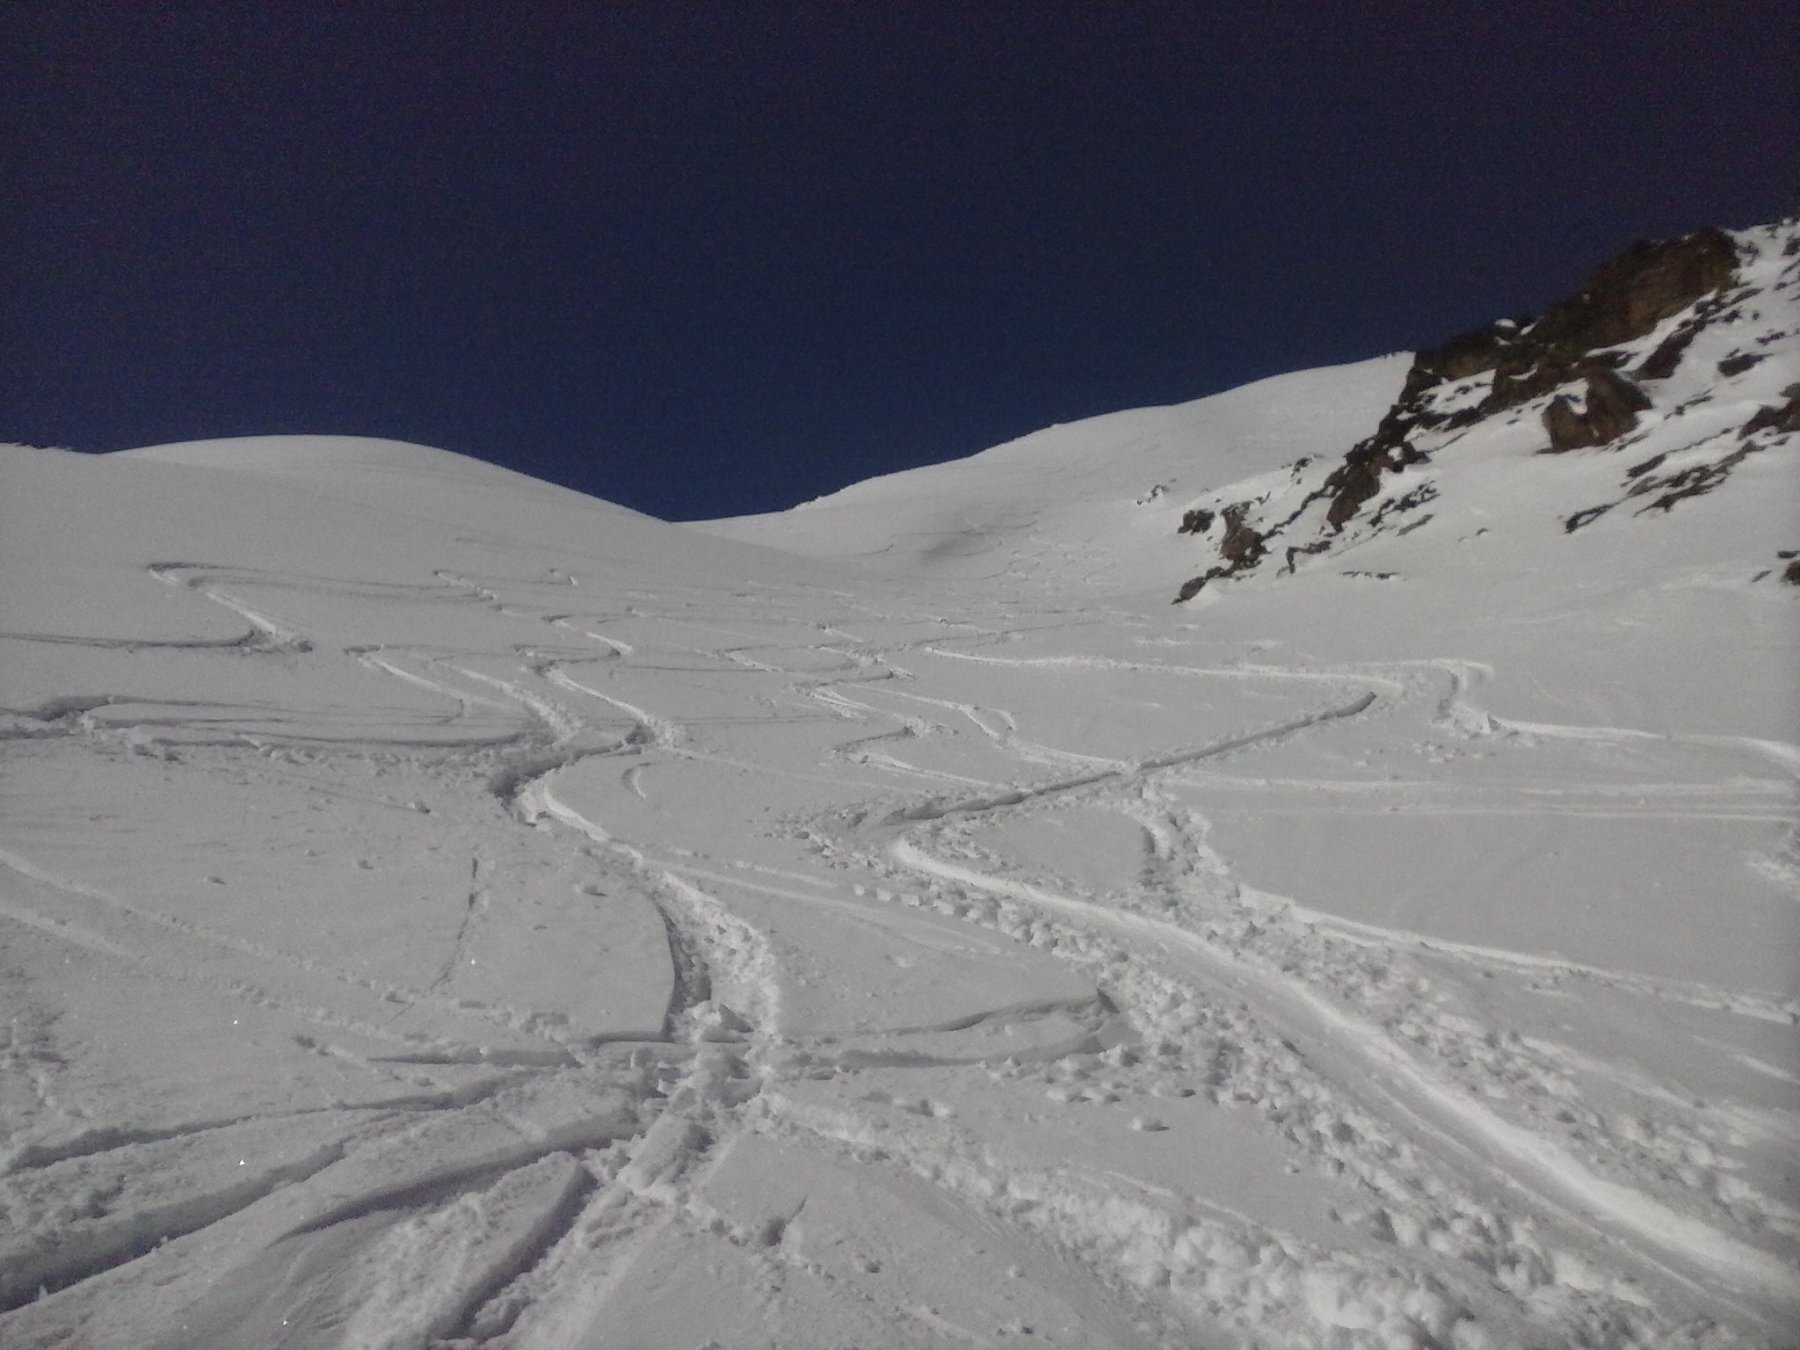 belle curve in neve polverosa...